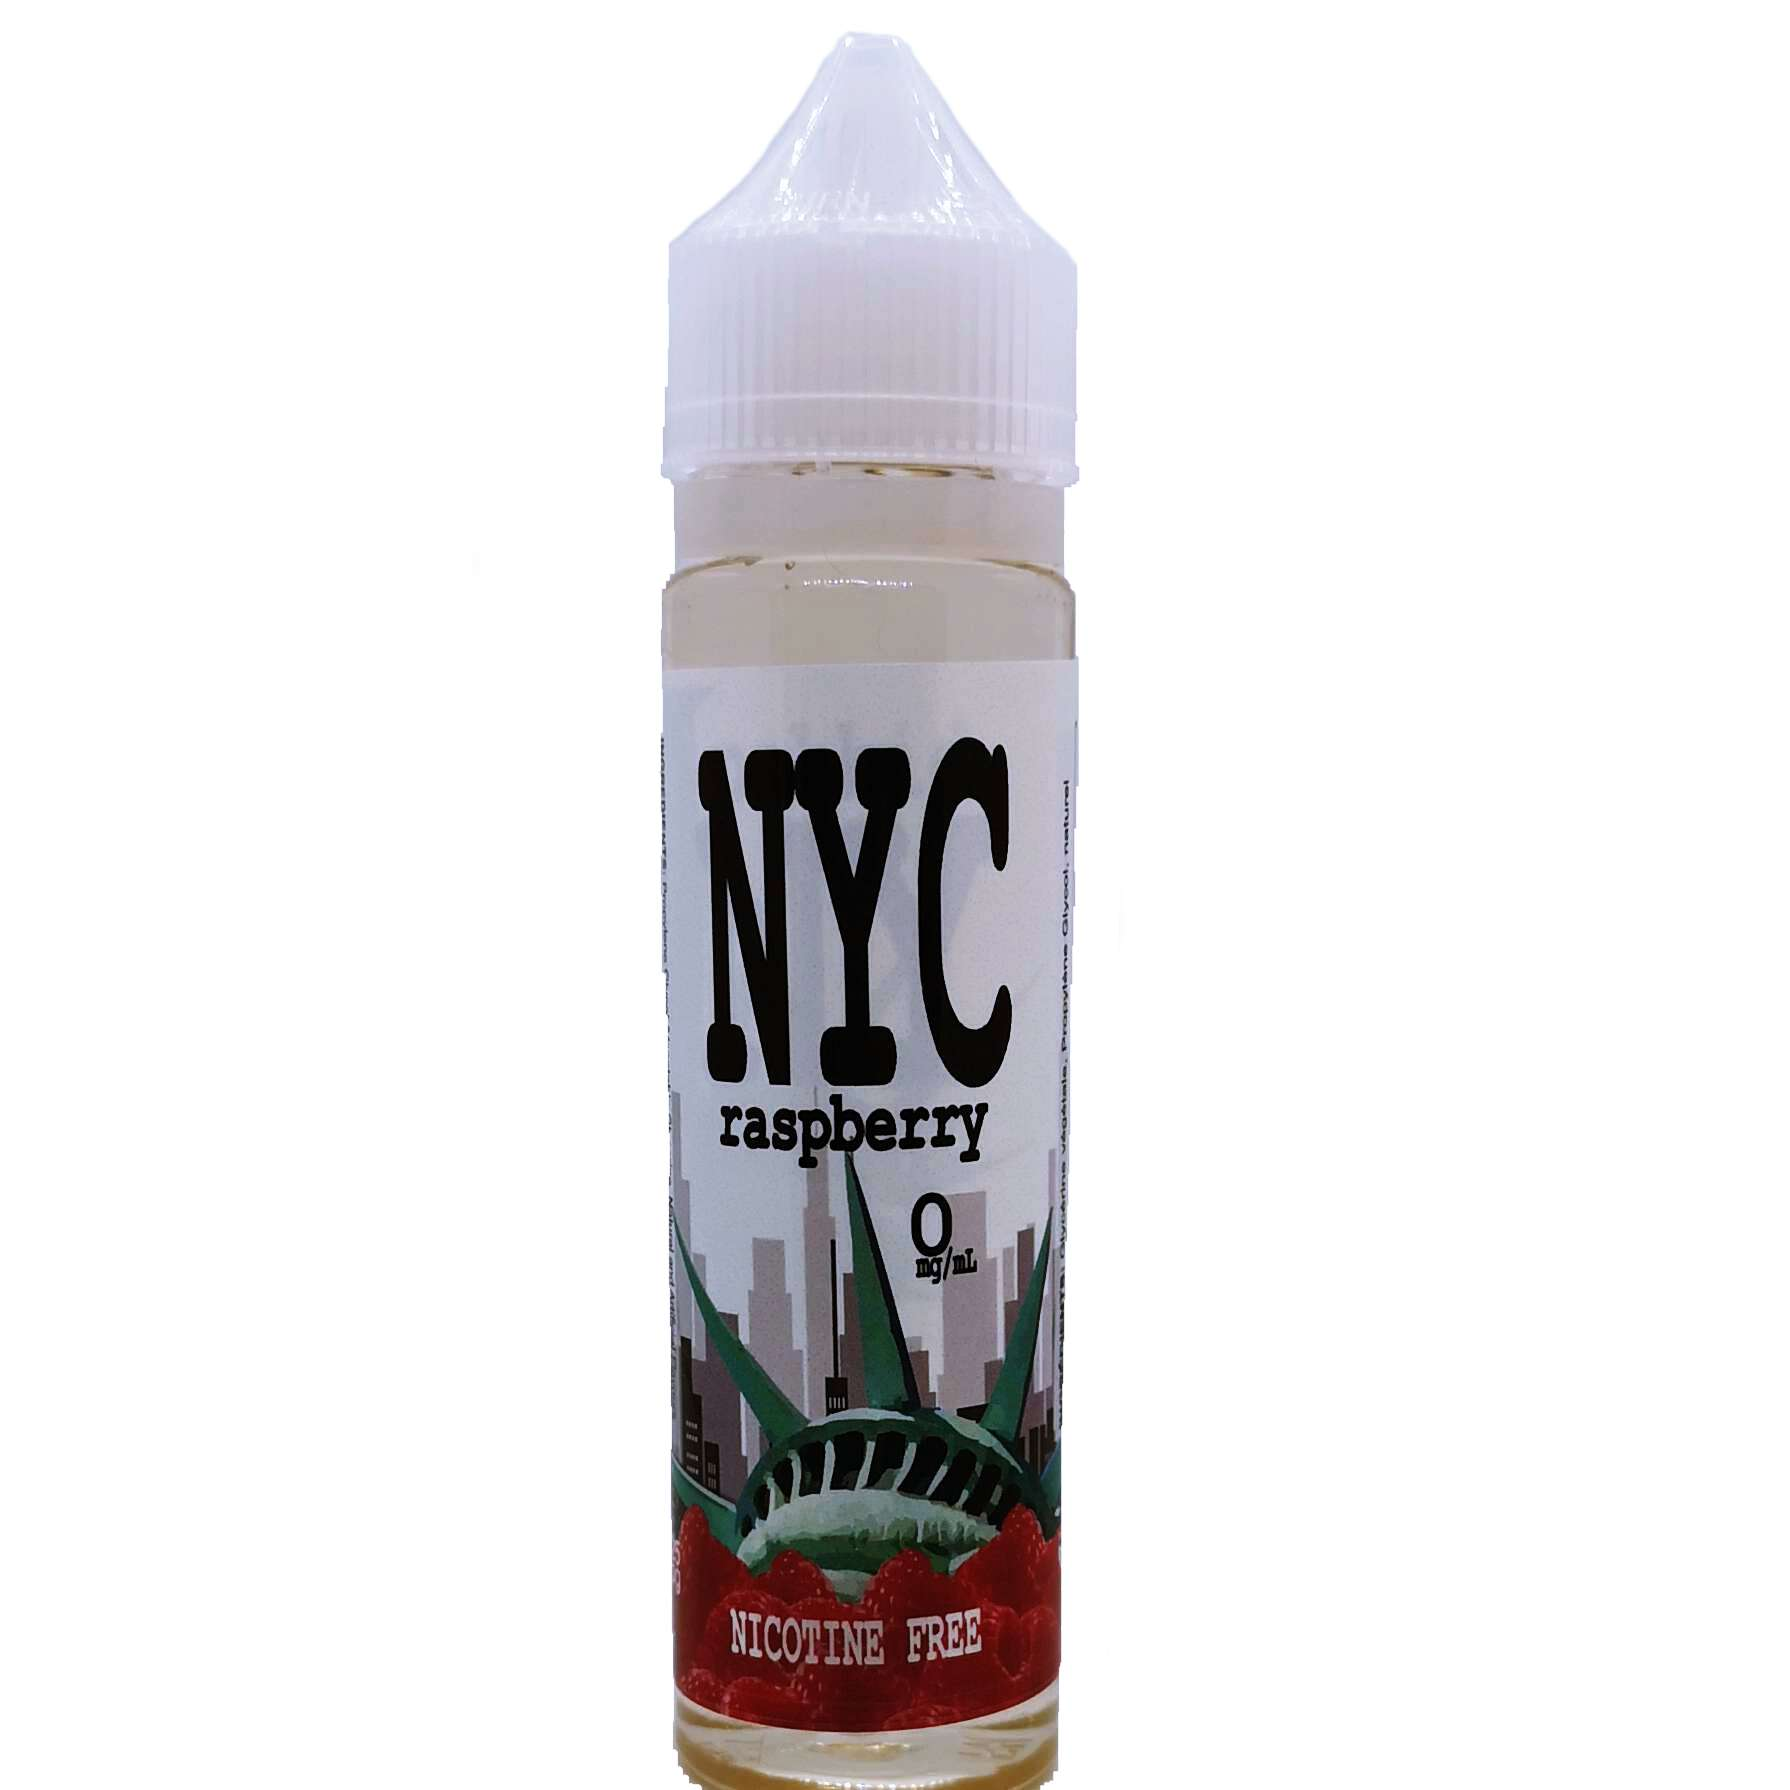 NYC-RASPBERRY-CHEESECAKE Blueberry Mad Milk E-liquid - 100ml